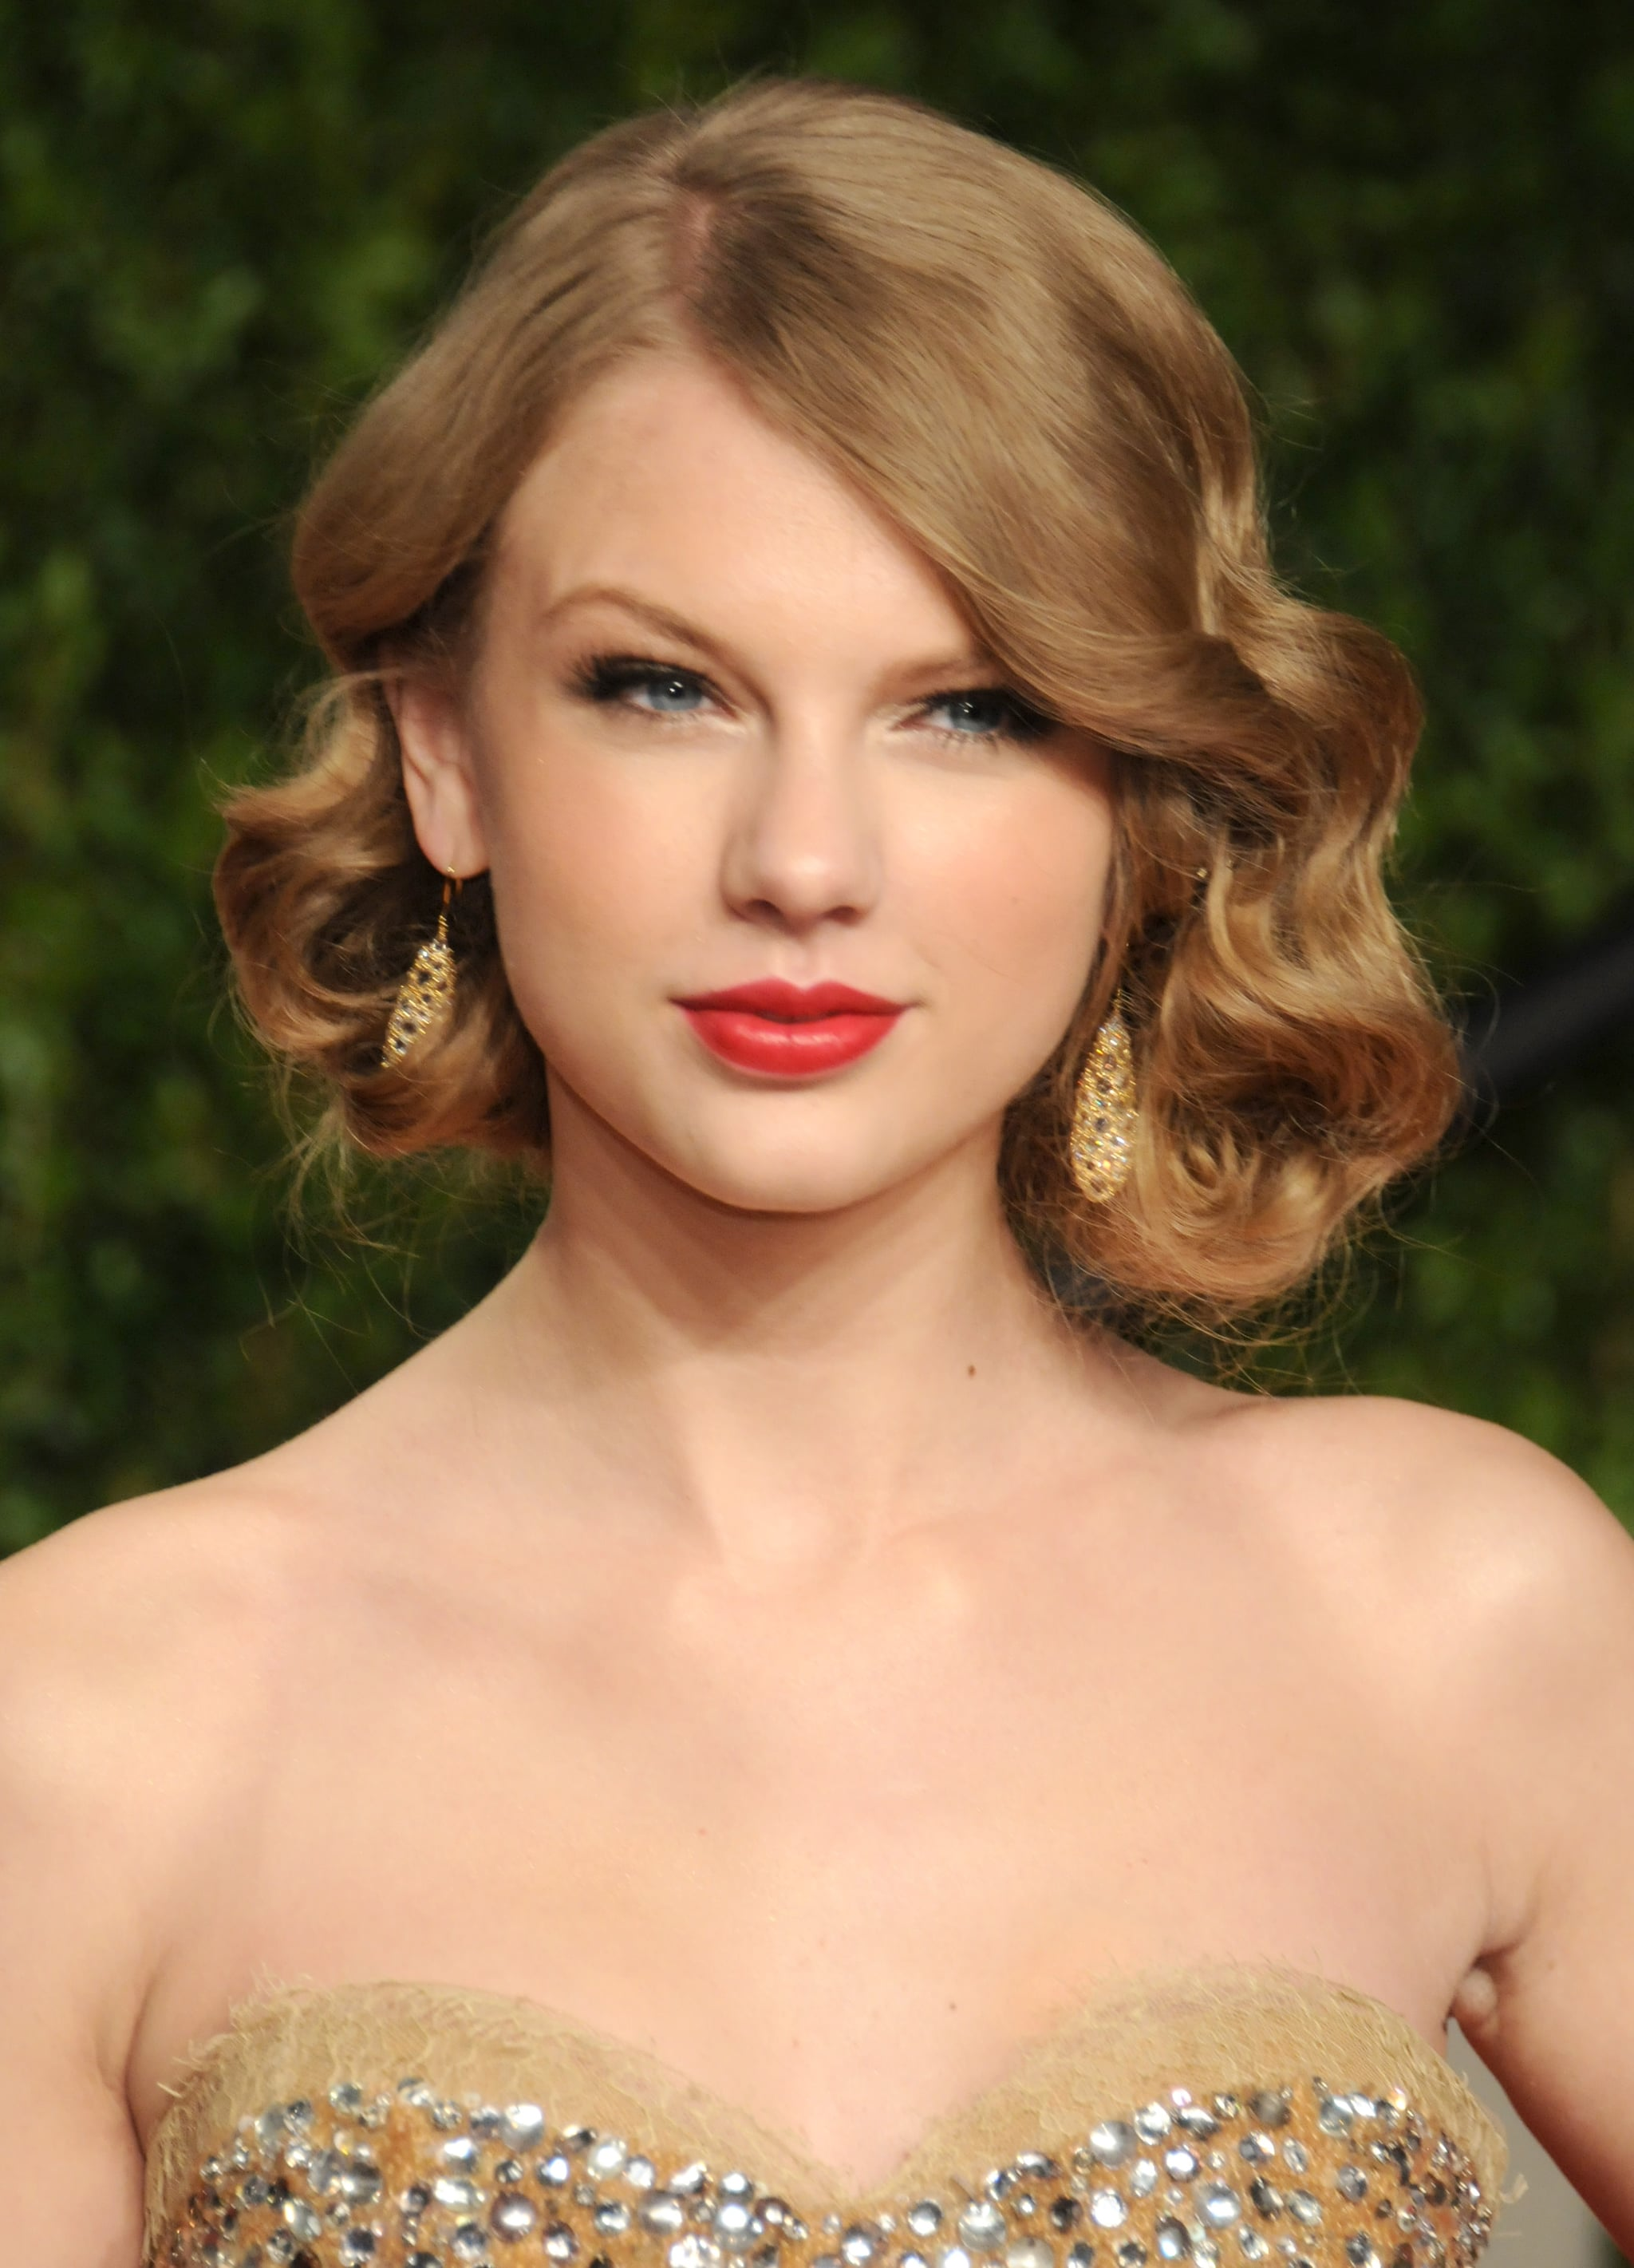 The Faux Bob Is Made For Curly Hair Like Taylor Swift S As It Works 20 Ways To Pull Off A Faux Bob For Holiday Parties Popsugar Beauty Photo 14